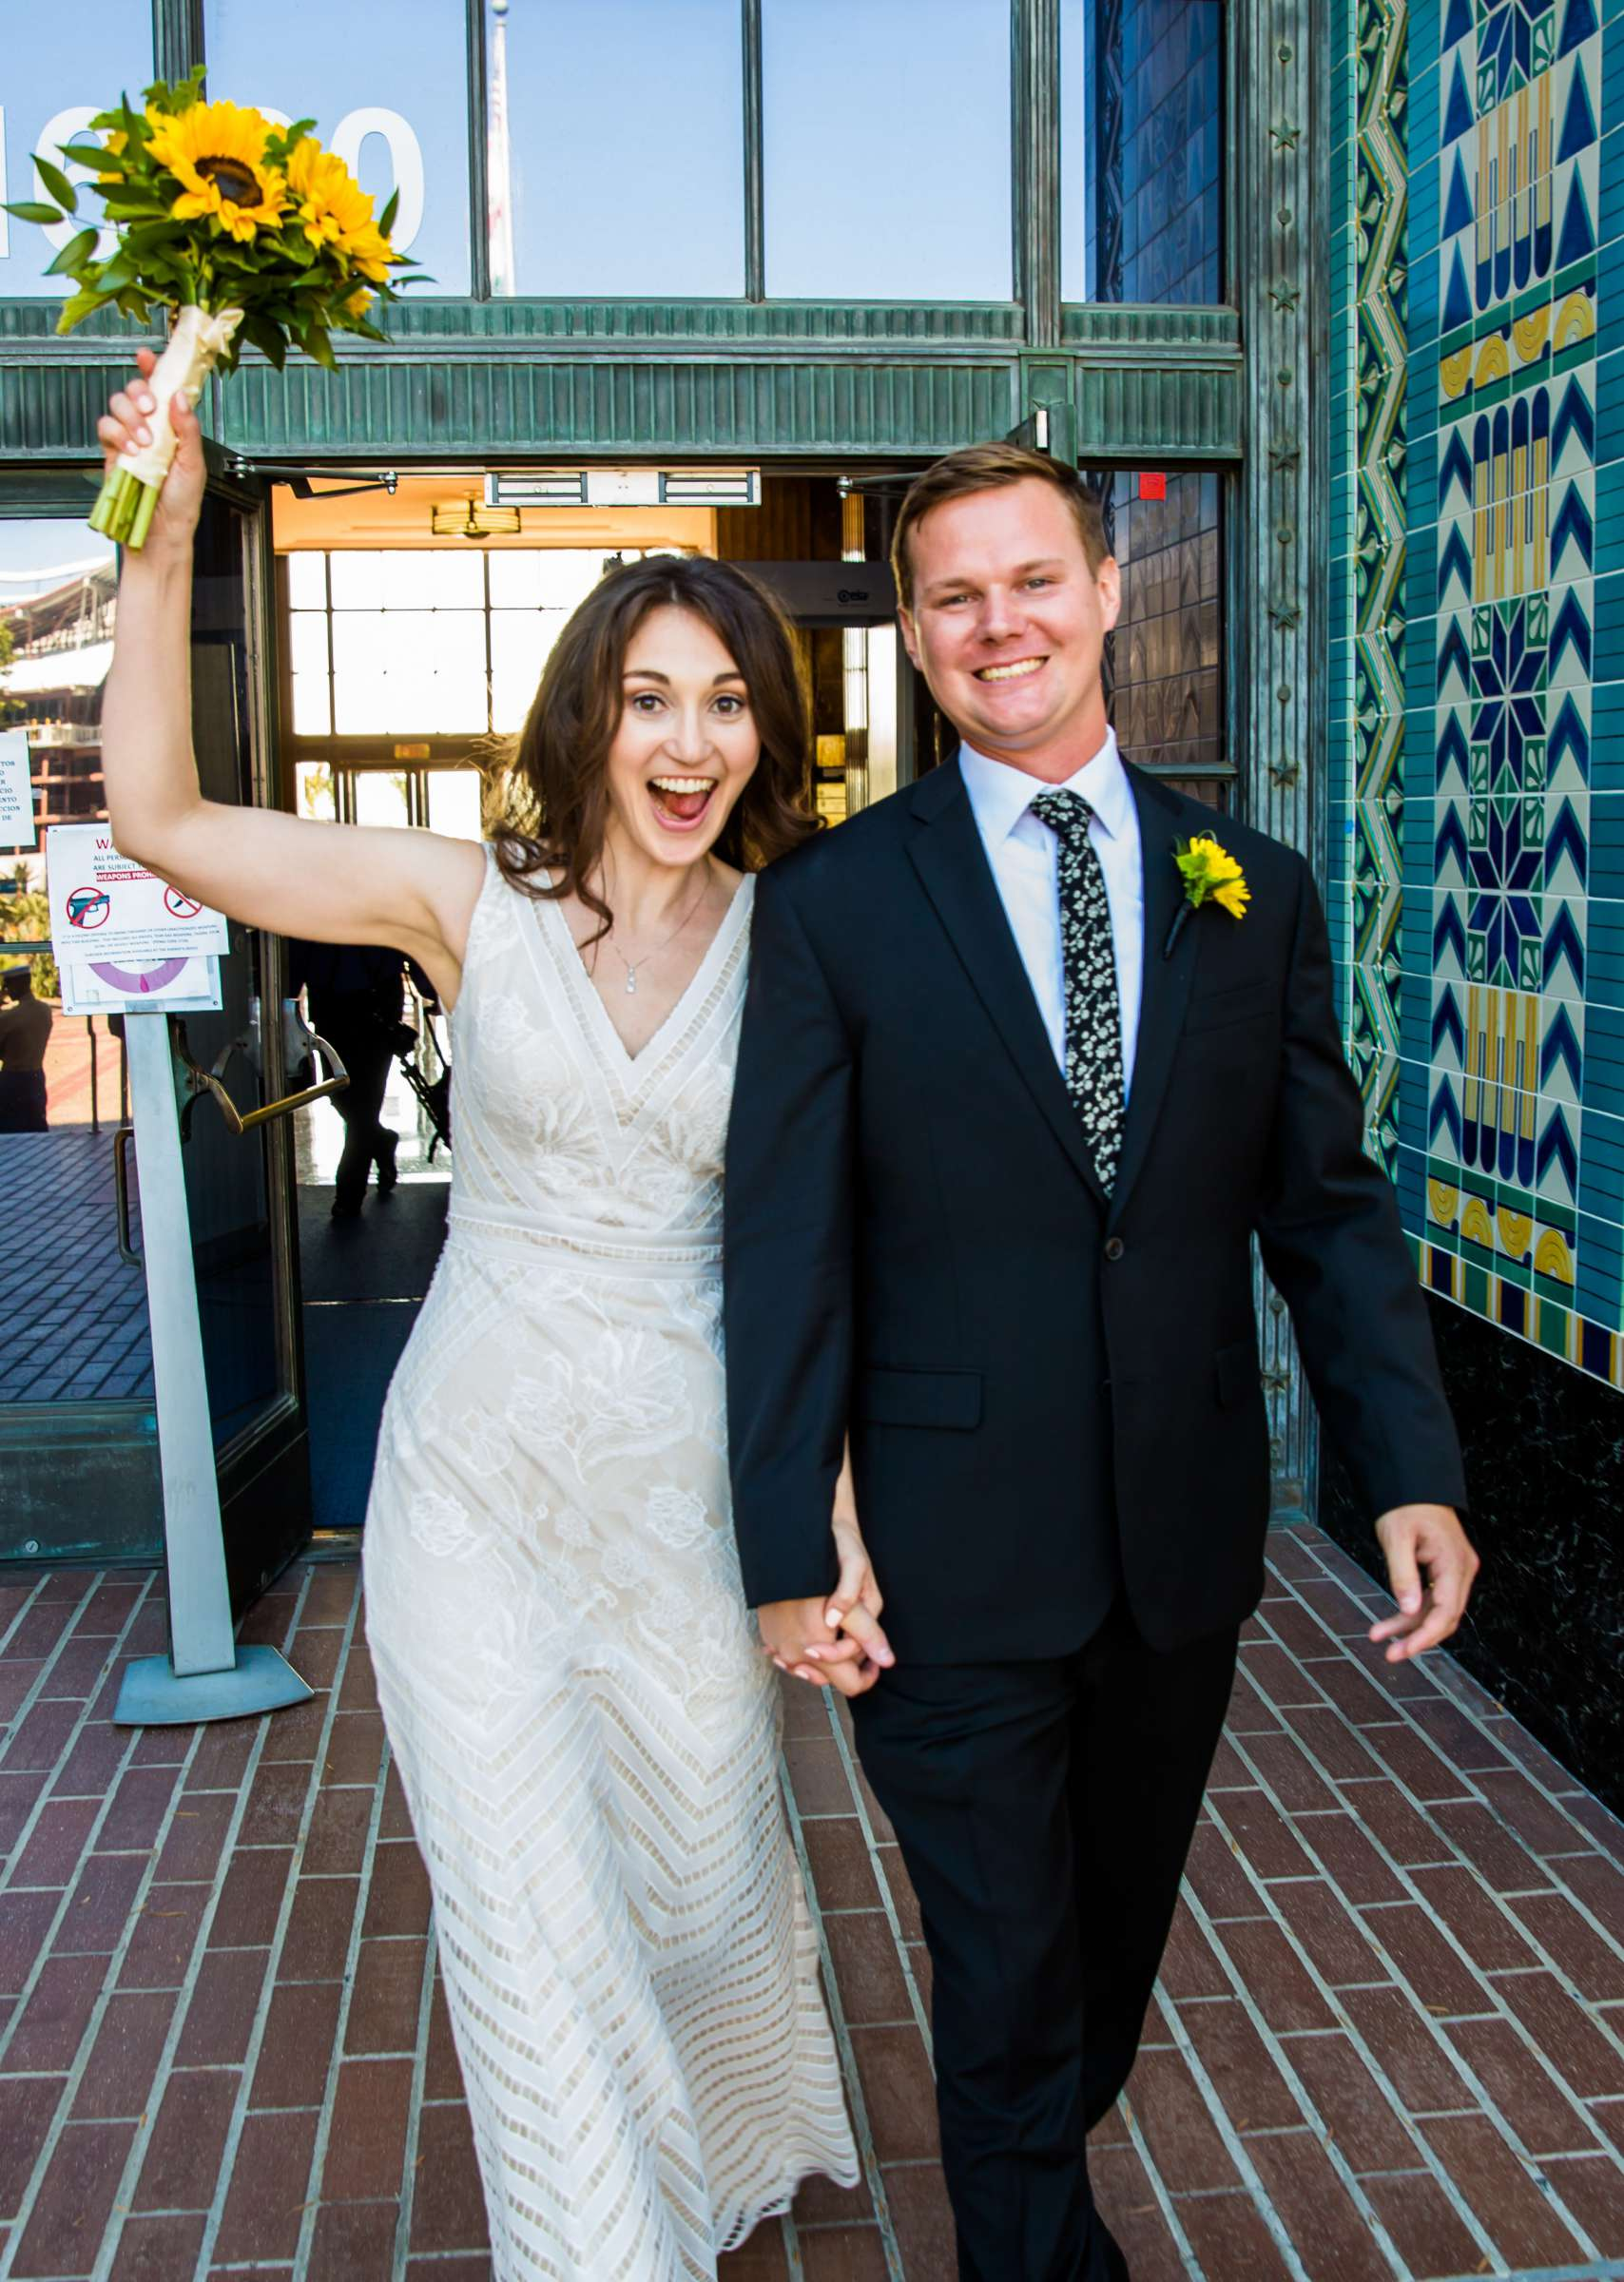 San Diego Courthouse Wedding, Erin and Douglas Wedding Photo #404352 by True Photography